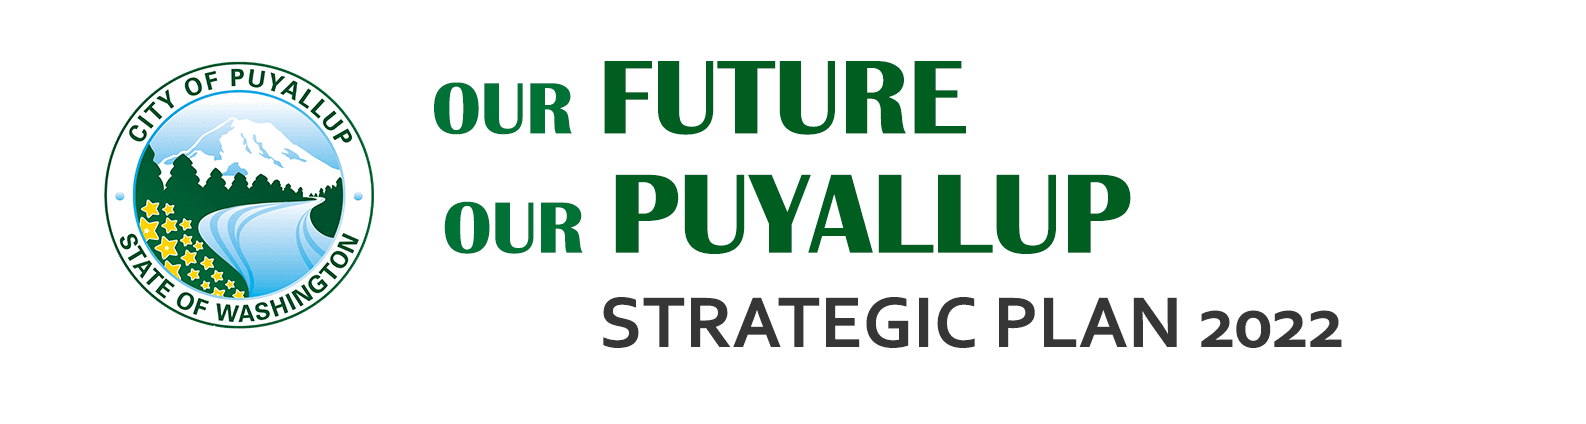 Our Future Our Puyallup logo